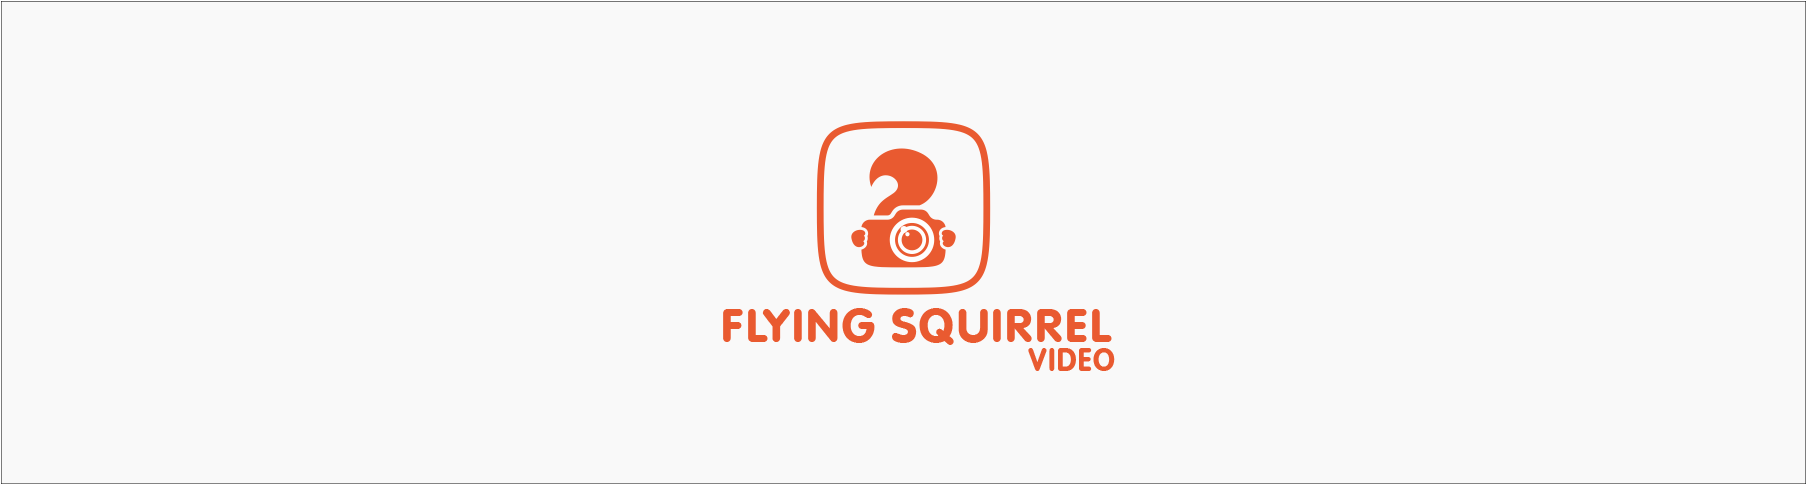 Logo Design by brands_in - Entry No. 30 in the Logo Design Contest Artistic Logo Design for Flying squirrel video.